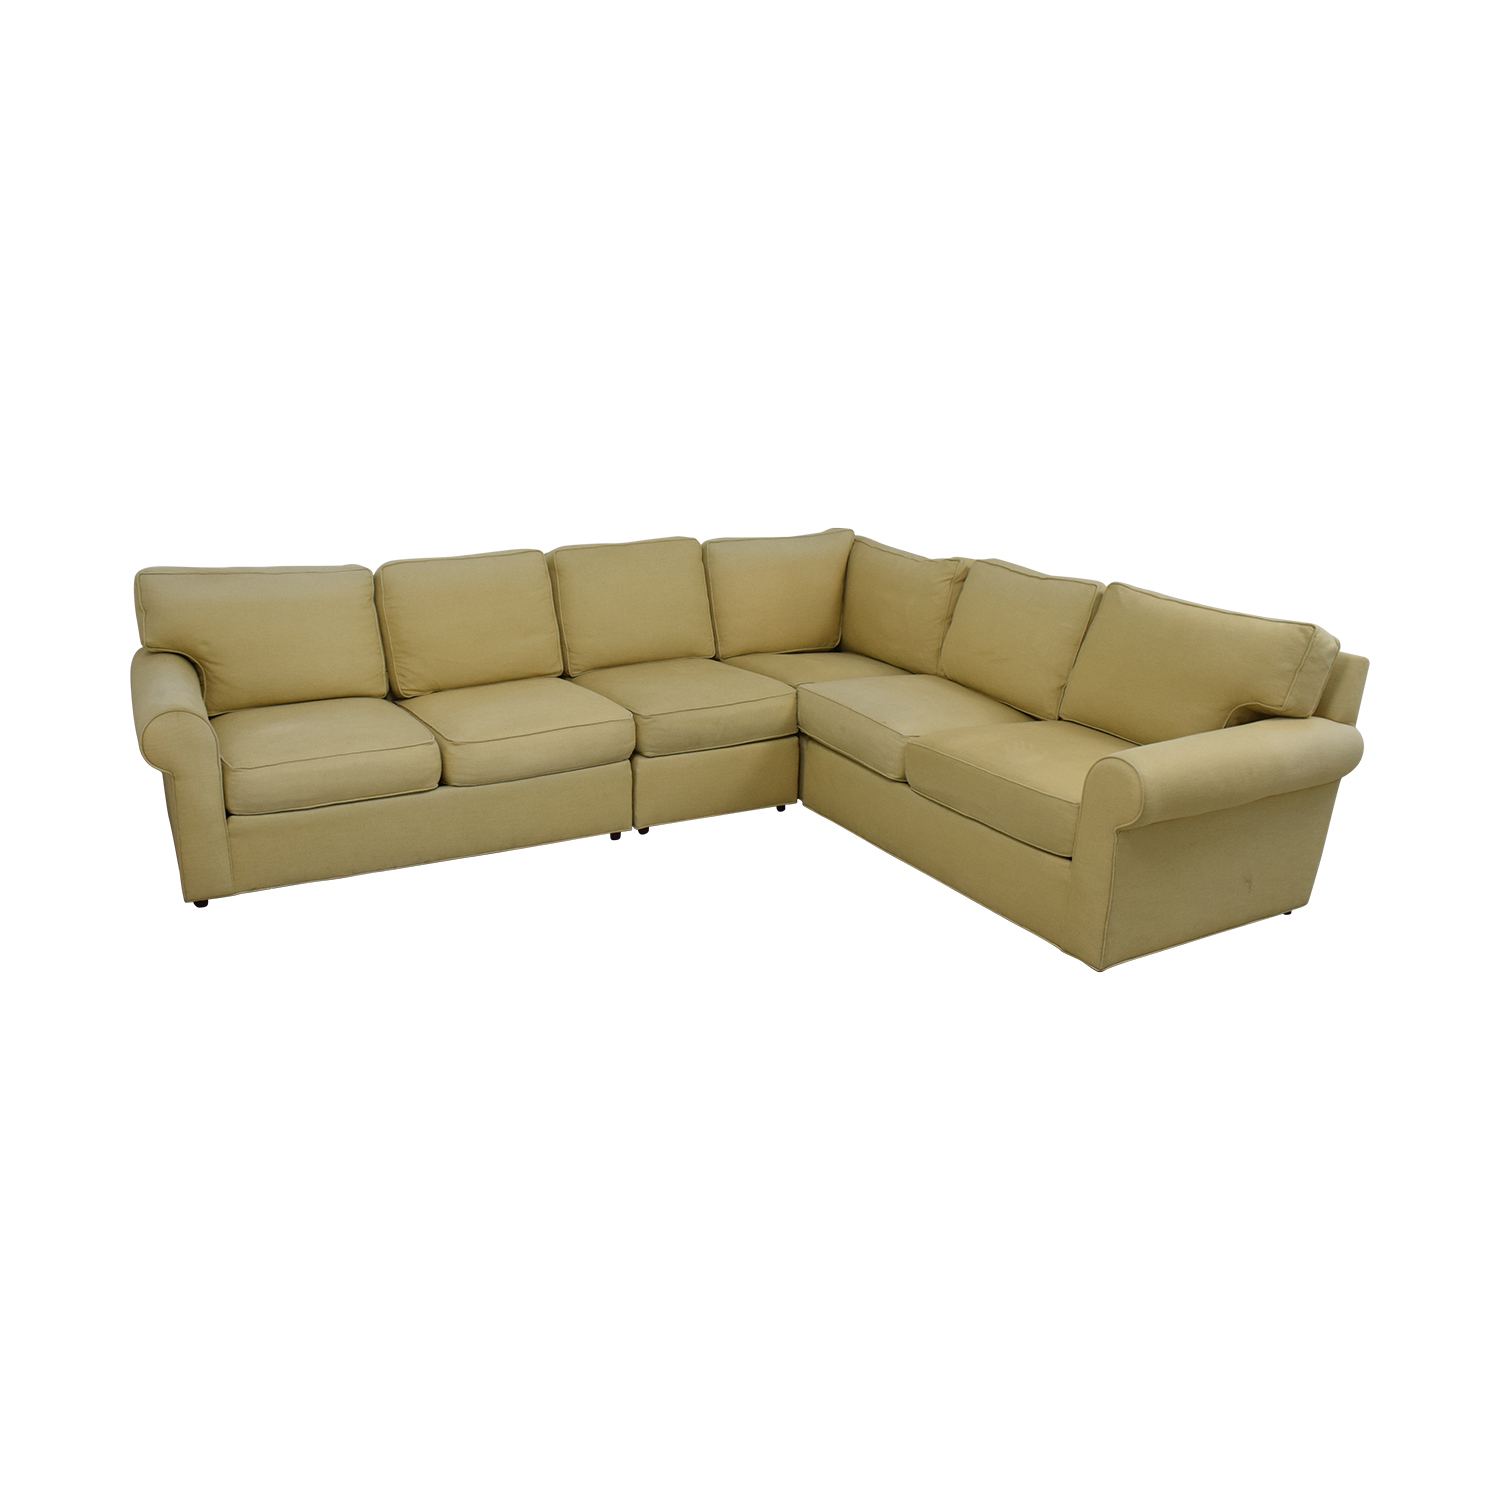 Ethan Allen Ethan Allen Sectional Sofa second hand